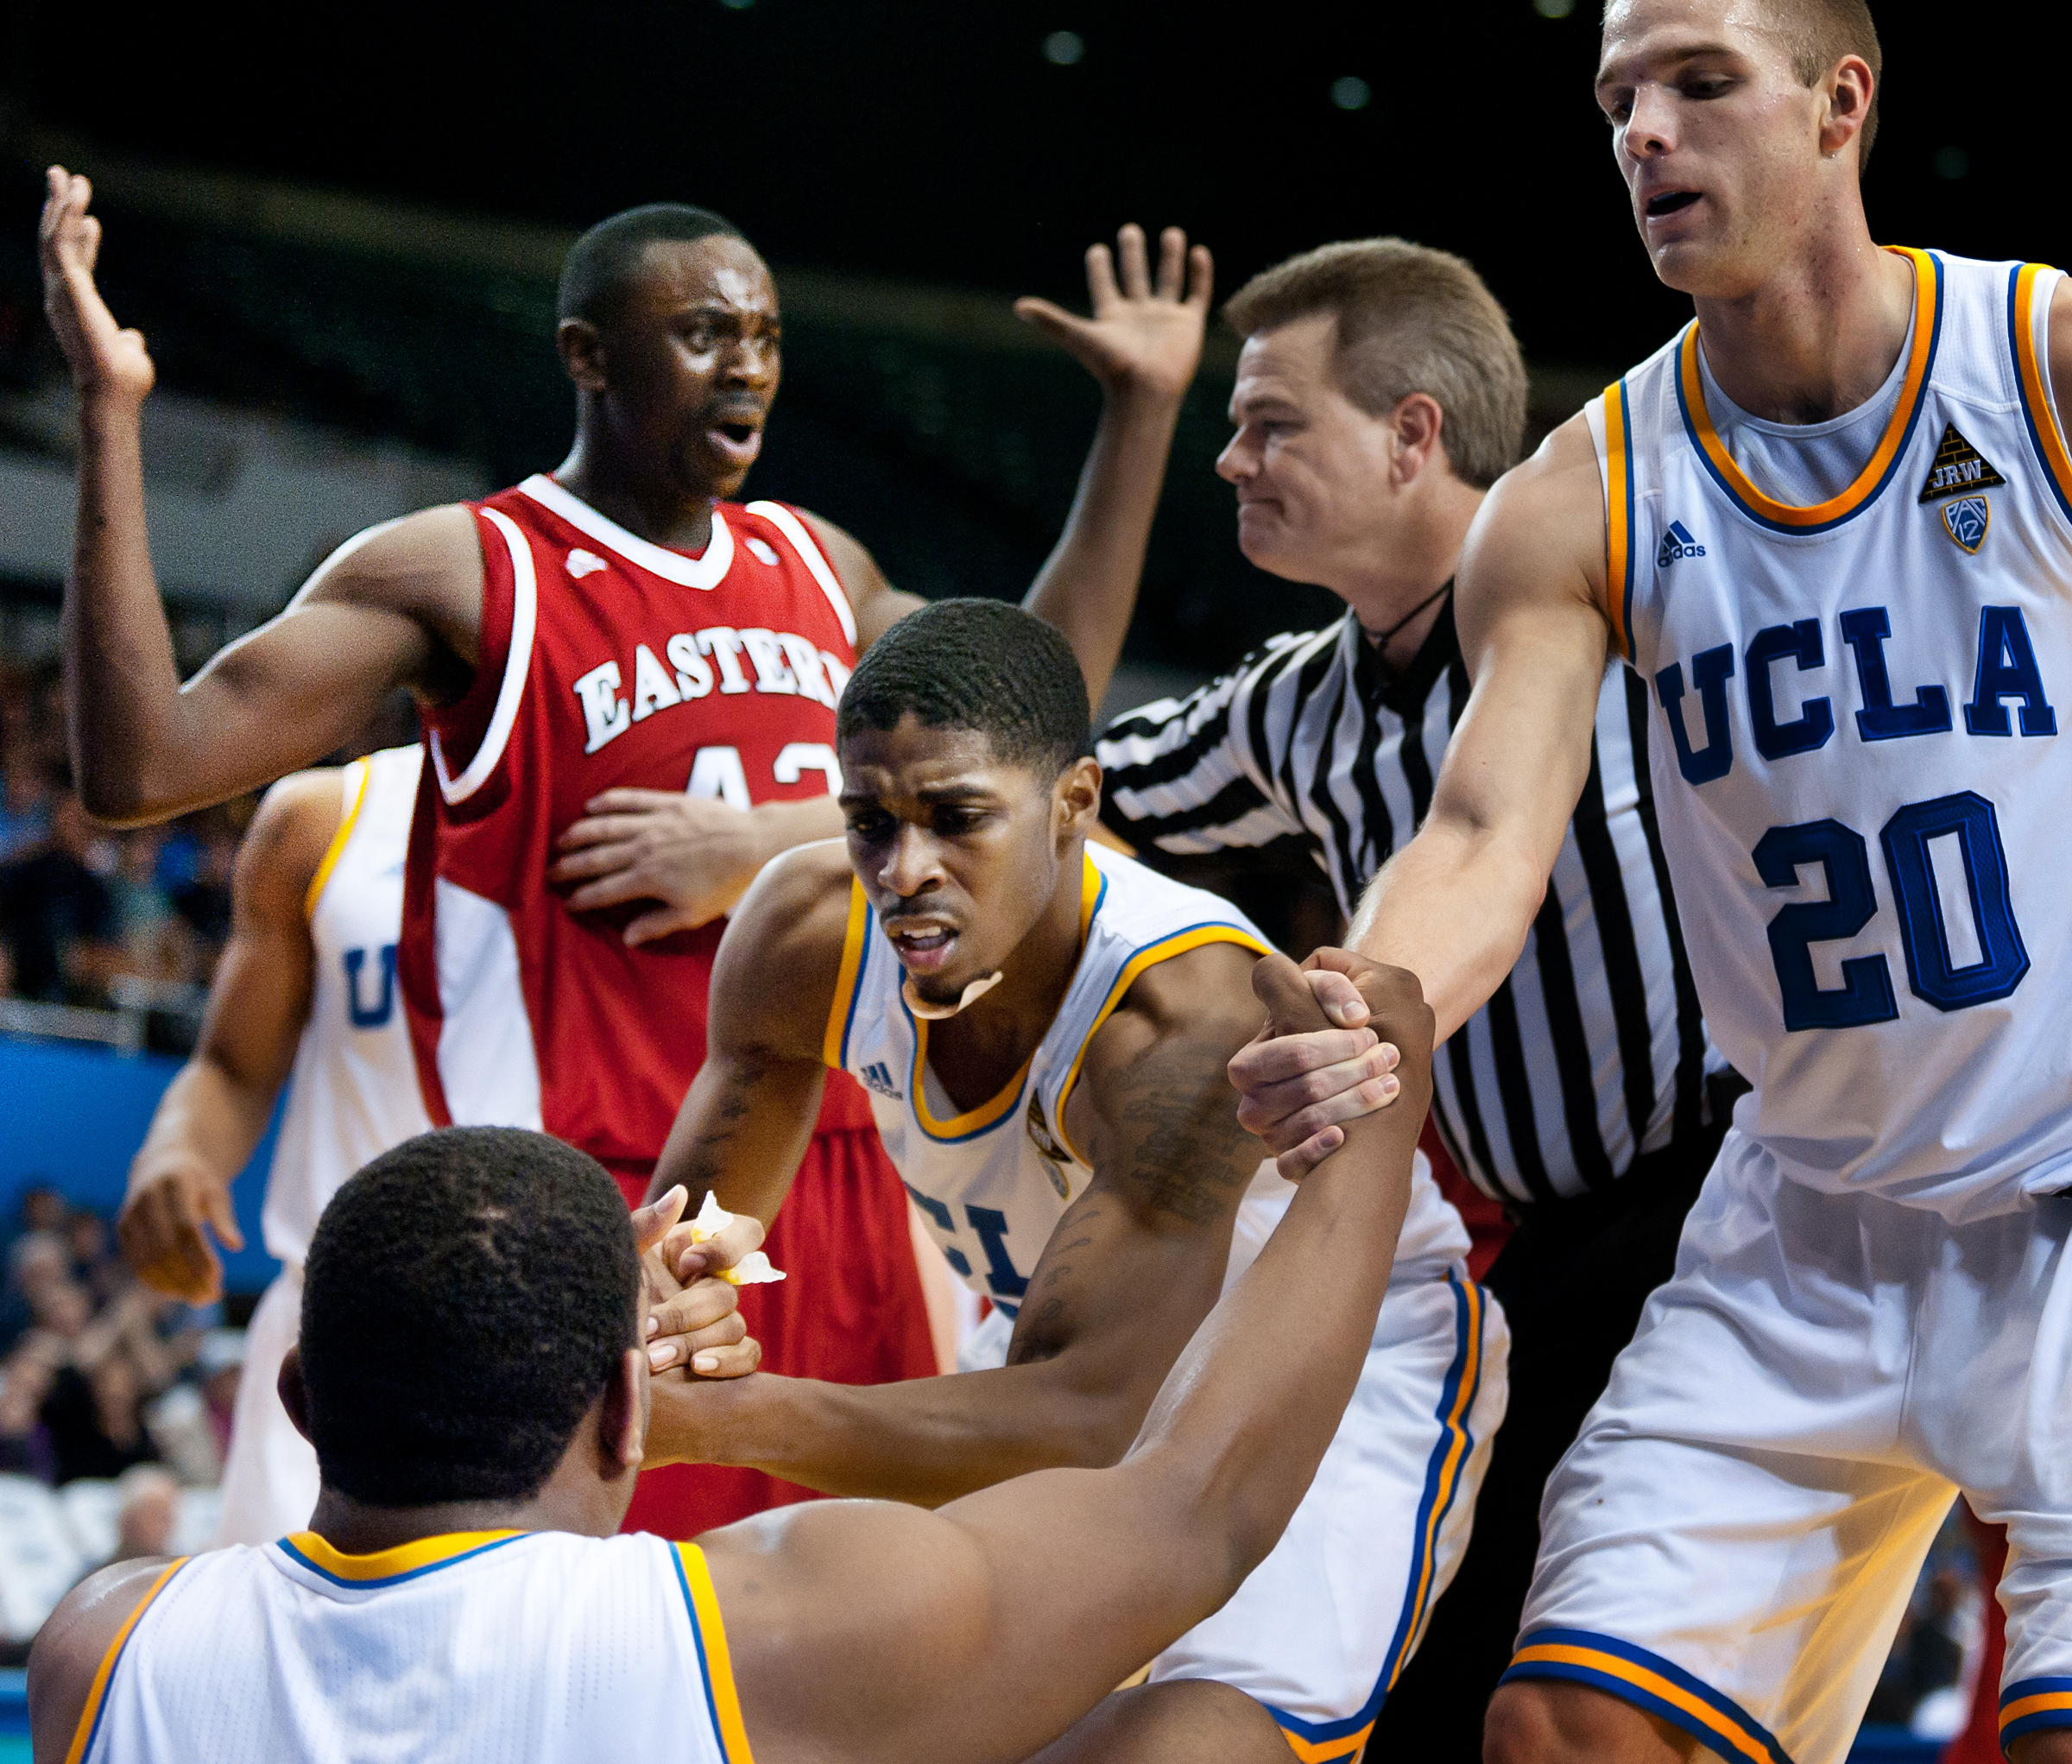 LOS ANGELES, CA – Senior guard Lazeric Jones (left) and junior forward Brendan Lane (right) help sophomore center Joshua Smith back to his feet after Smith was fouled to the ground by Eastern Washington senior forward Cliff Ederaine at the Los Angeles Sports Arena on Wednesday, December 14, 2011.